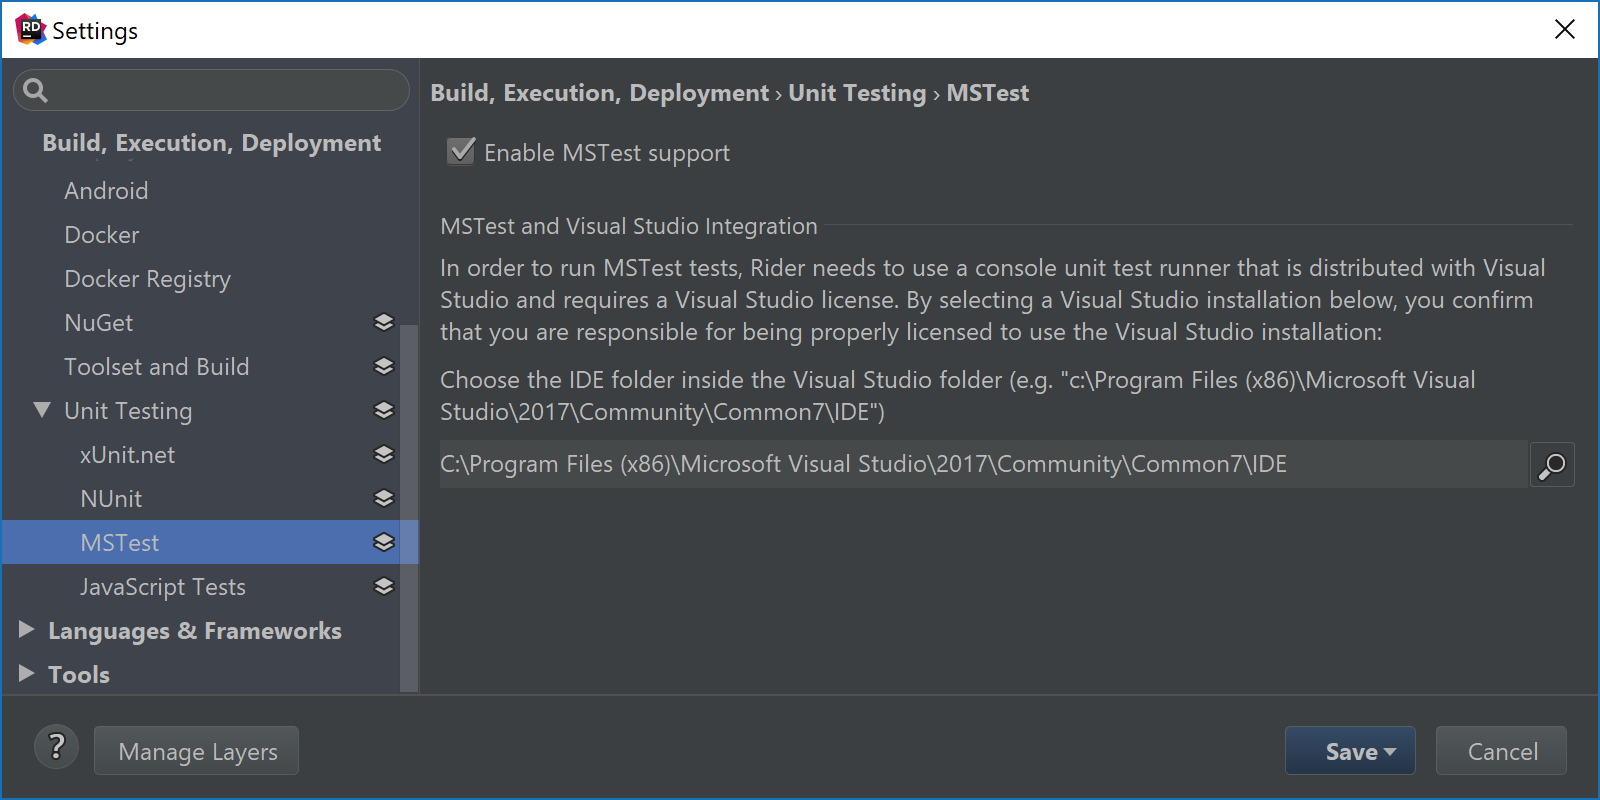 Configure path to Visual Studio to enable MSTest V1 support